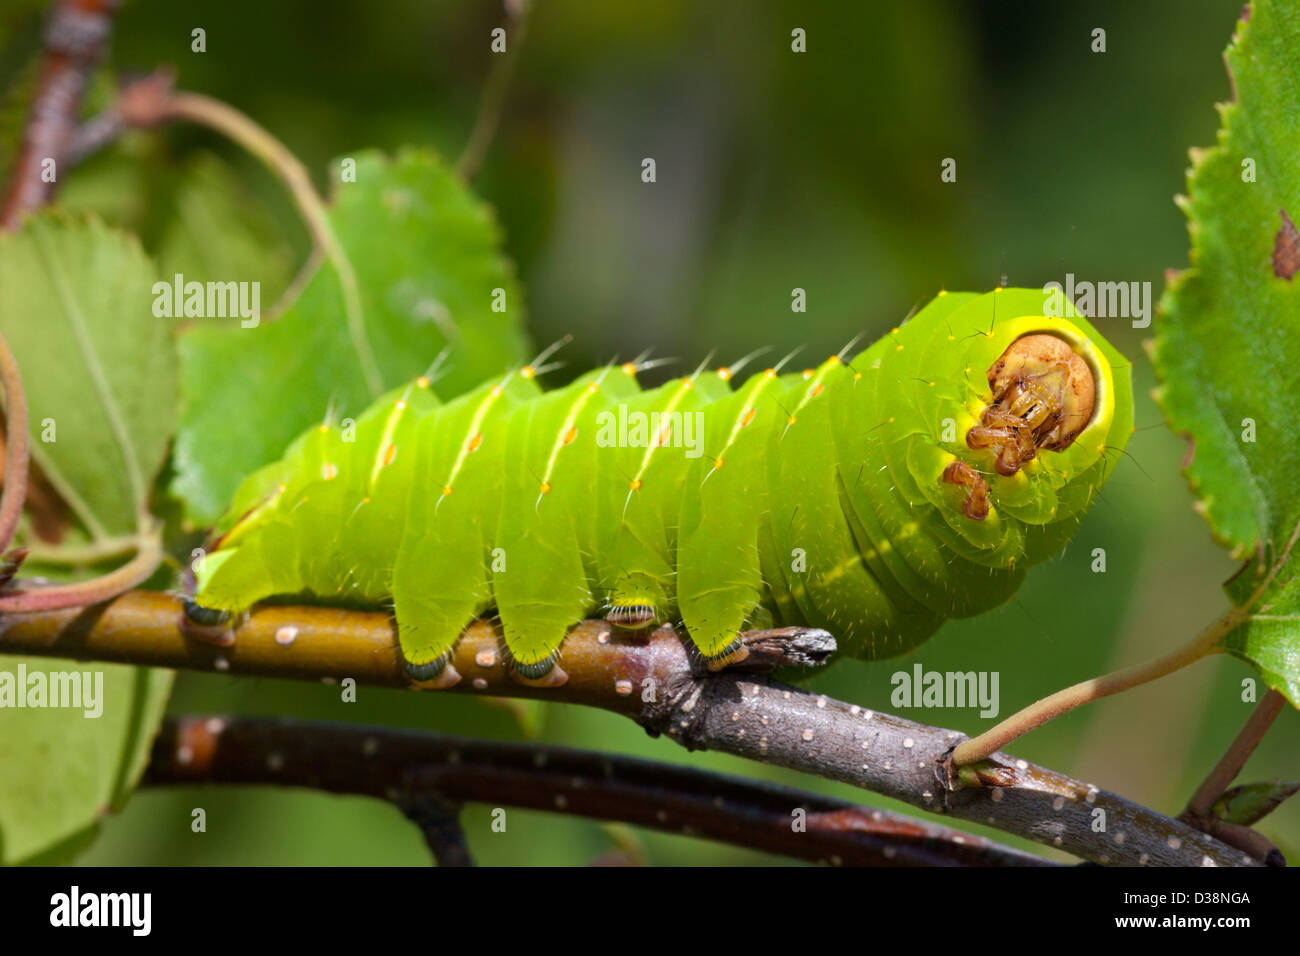 Insect Luna Moth Caterpillar Grub Green Stock Photo  53667610